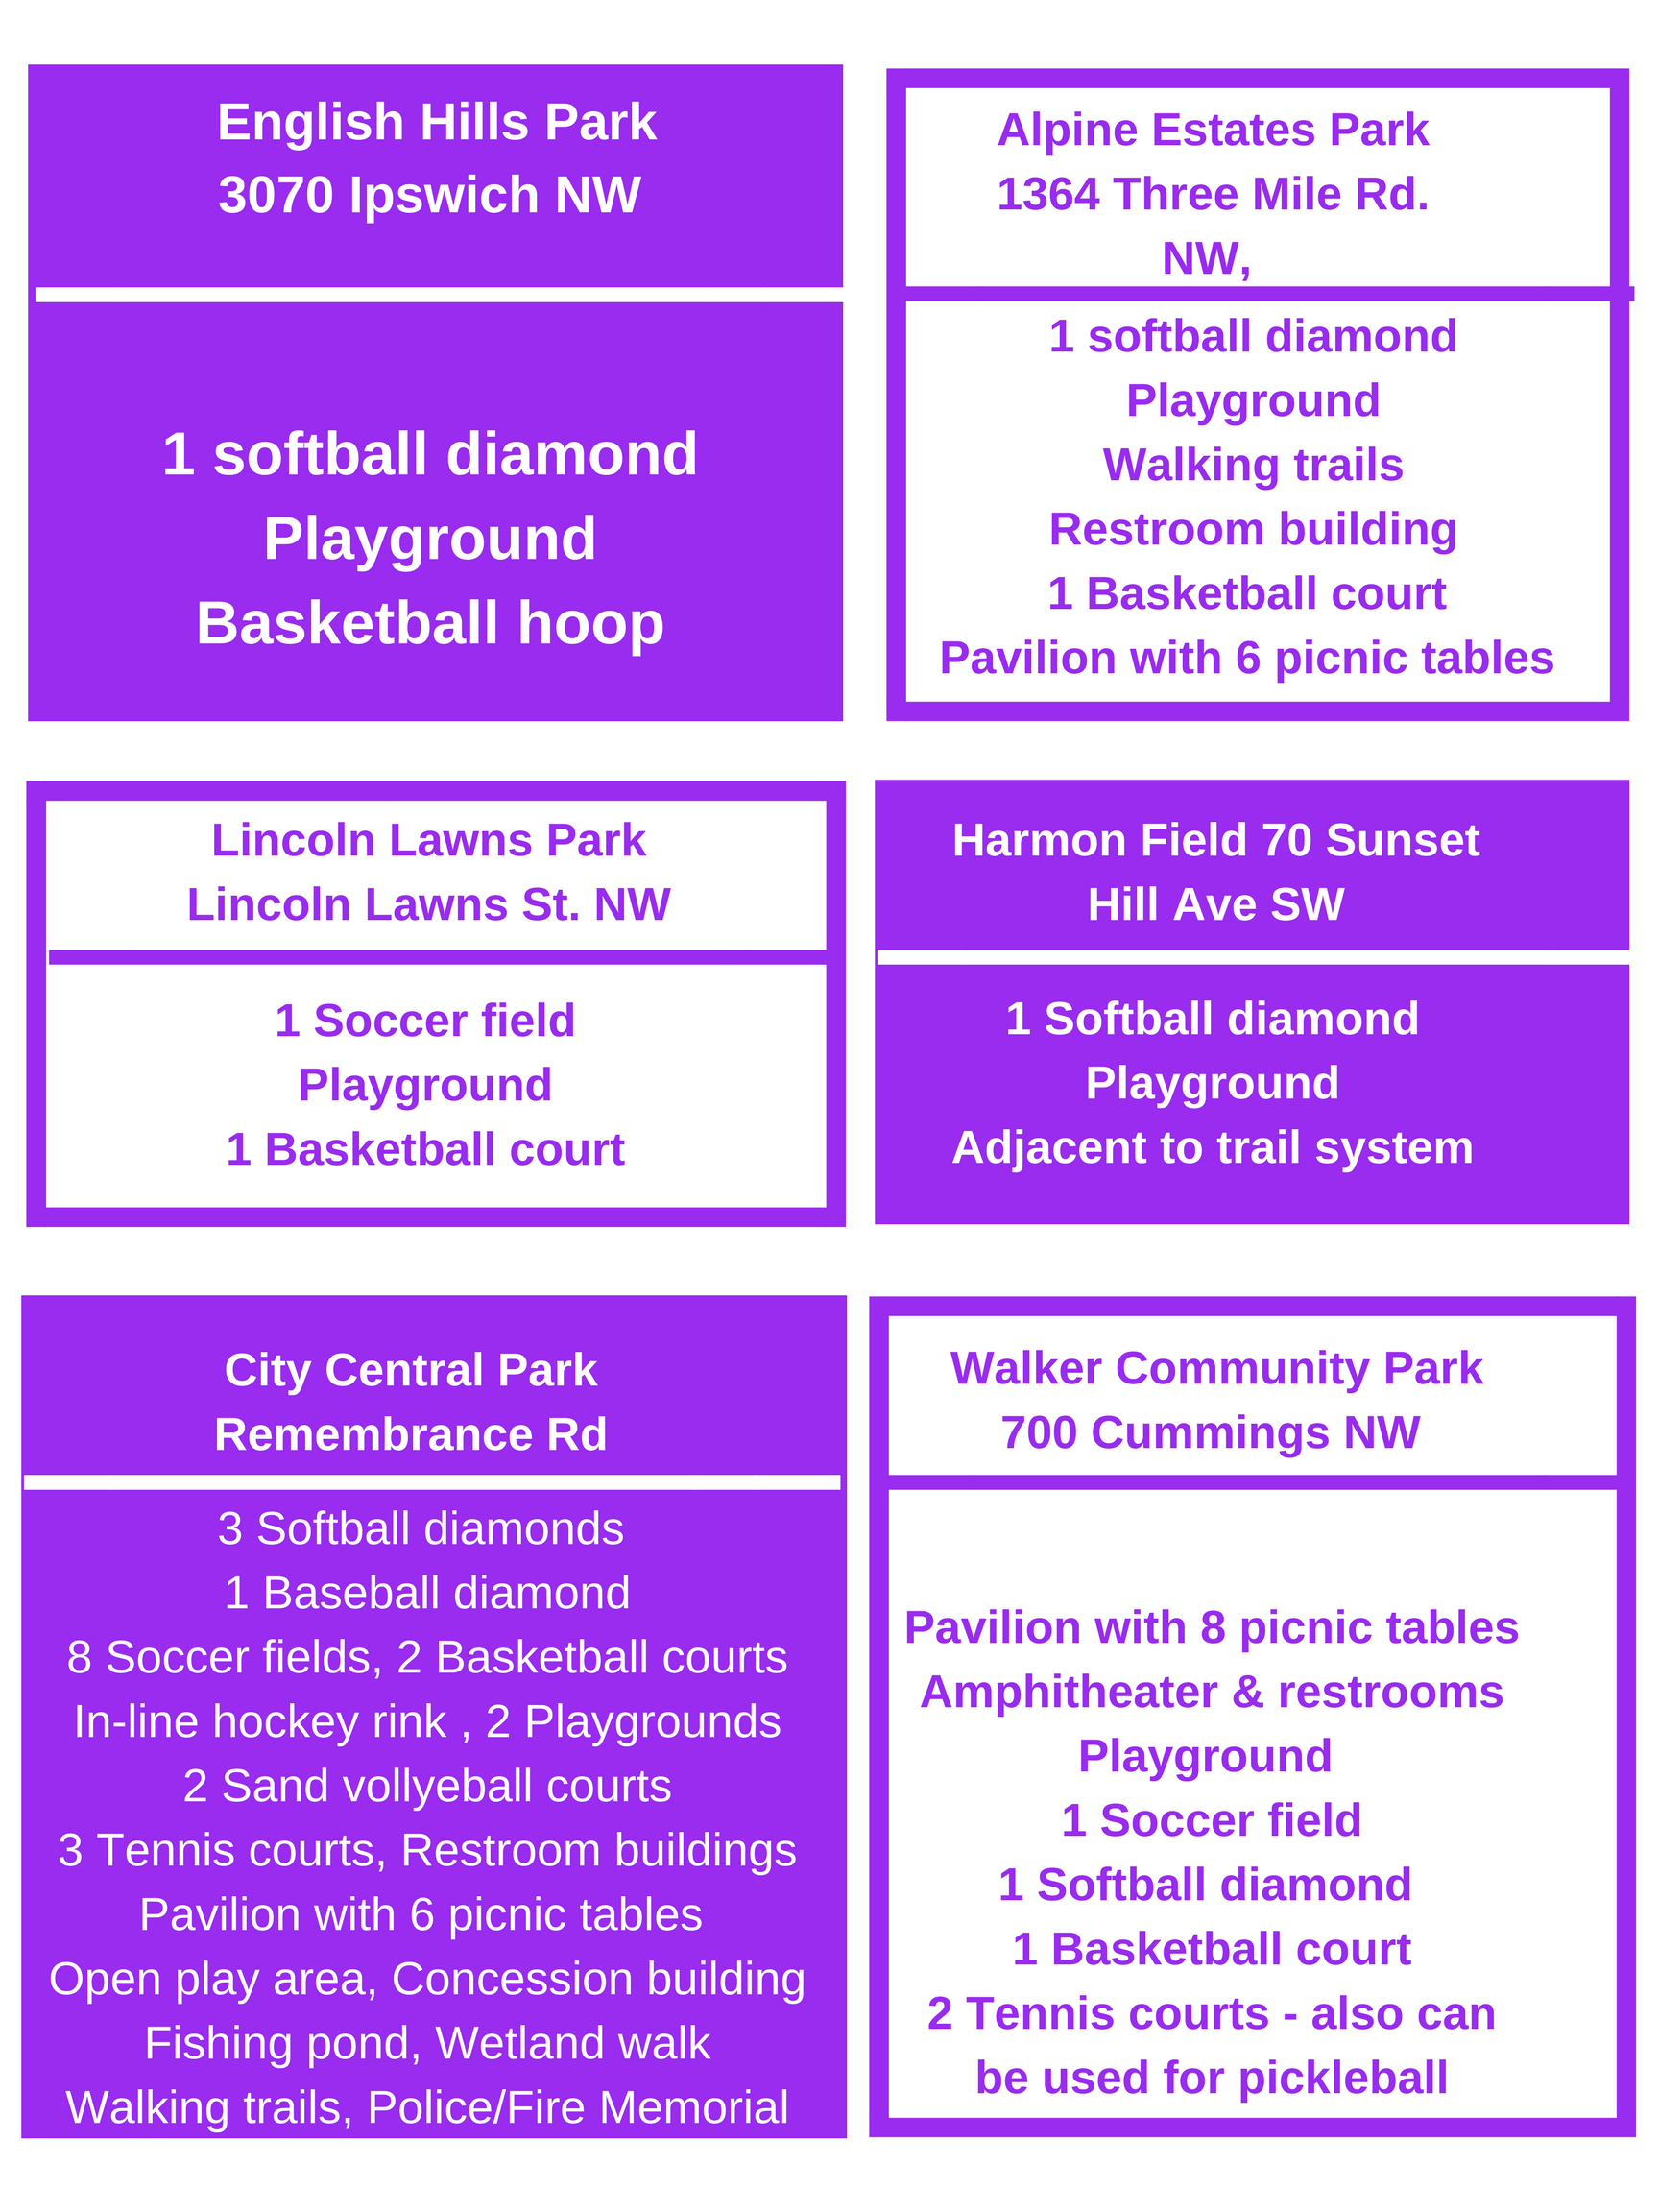 050418 - parks and amenities 2